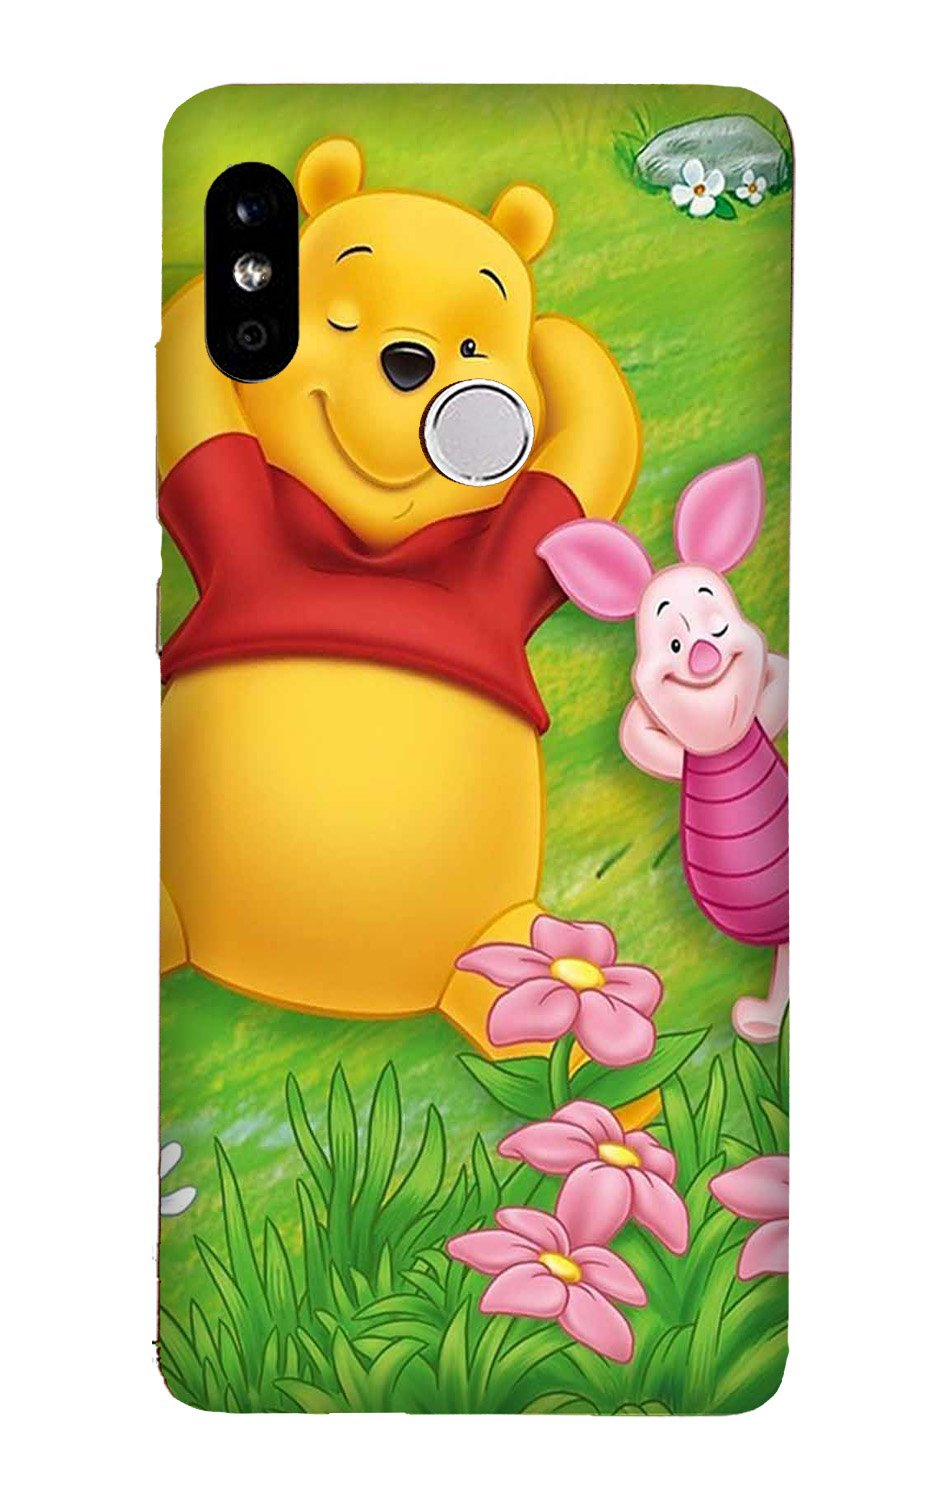 Winnie The Pooh Mobile Back Case for Mi A2  (Design - 348)